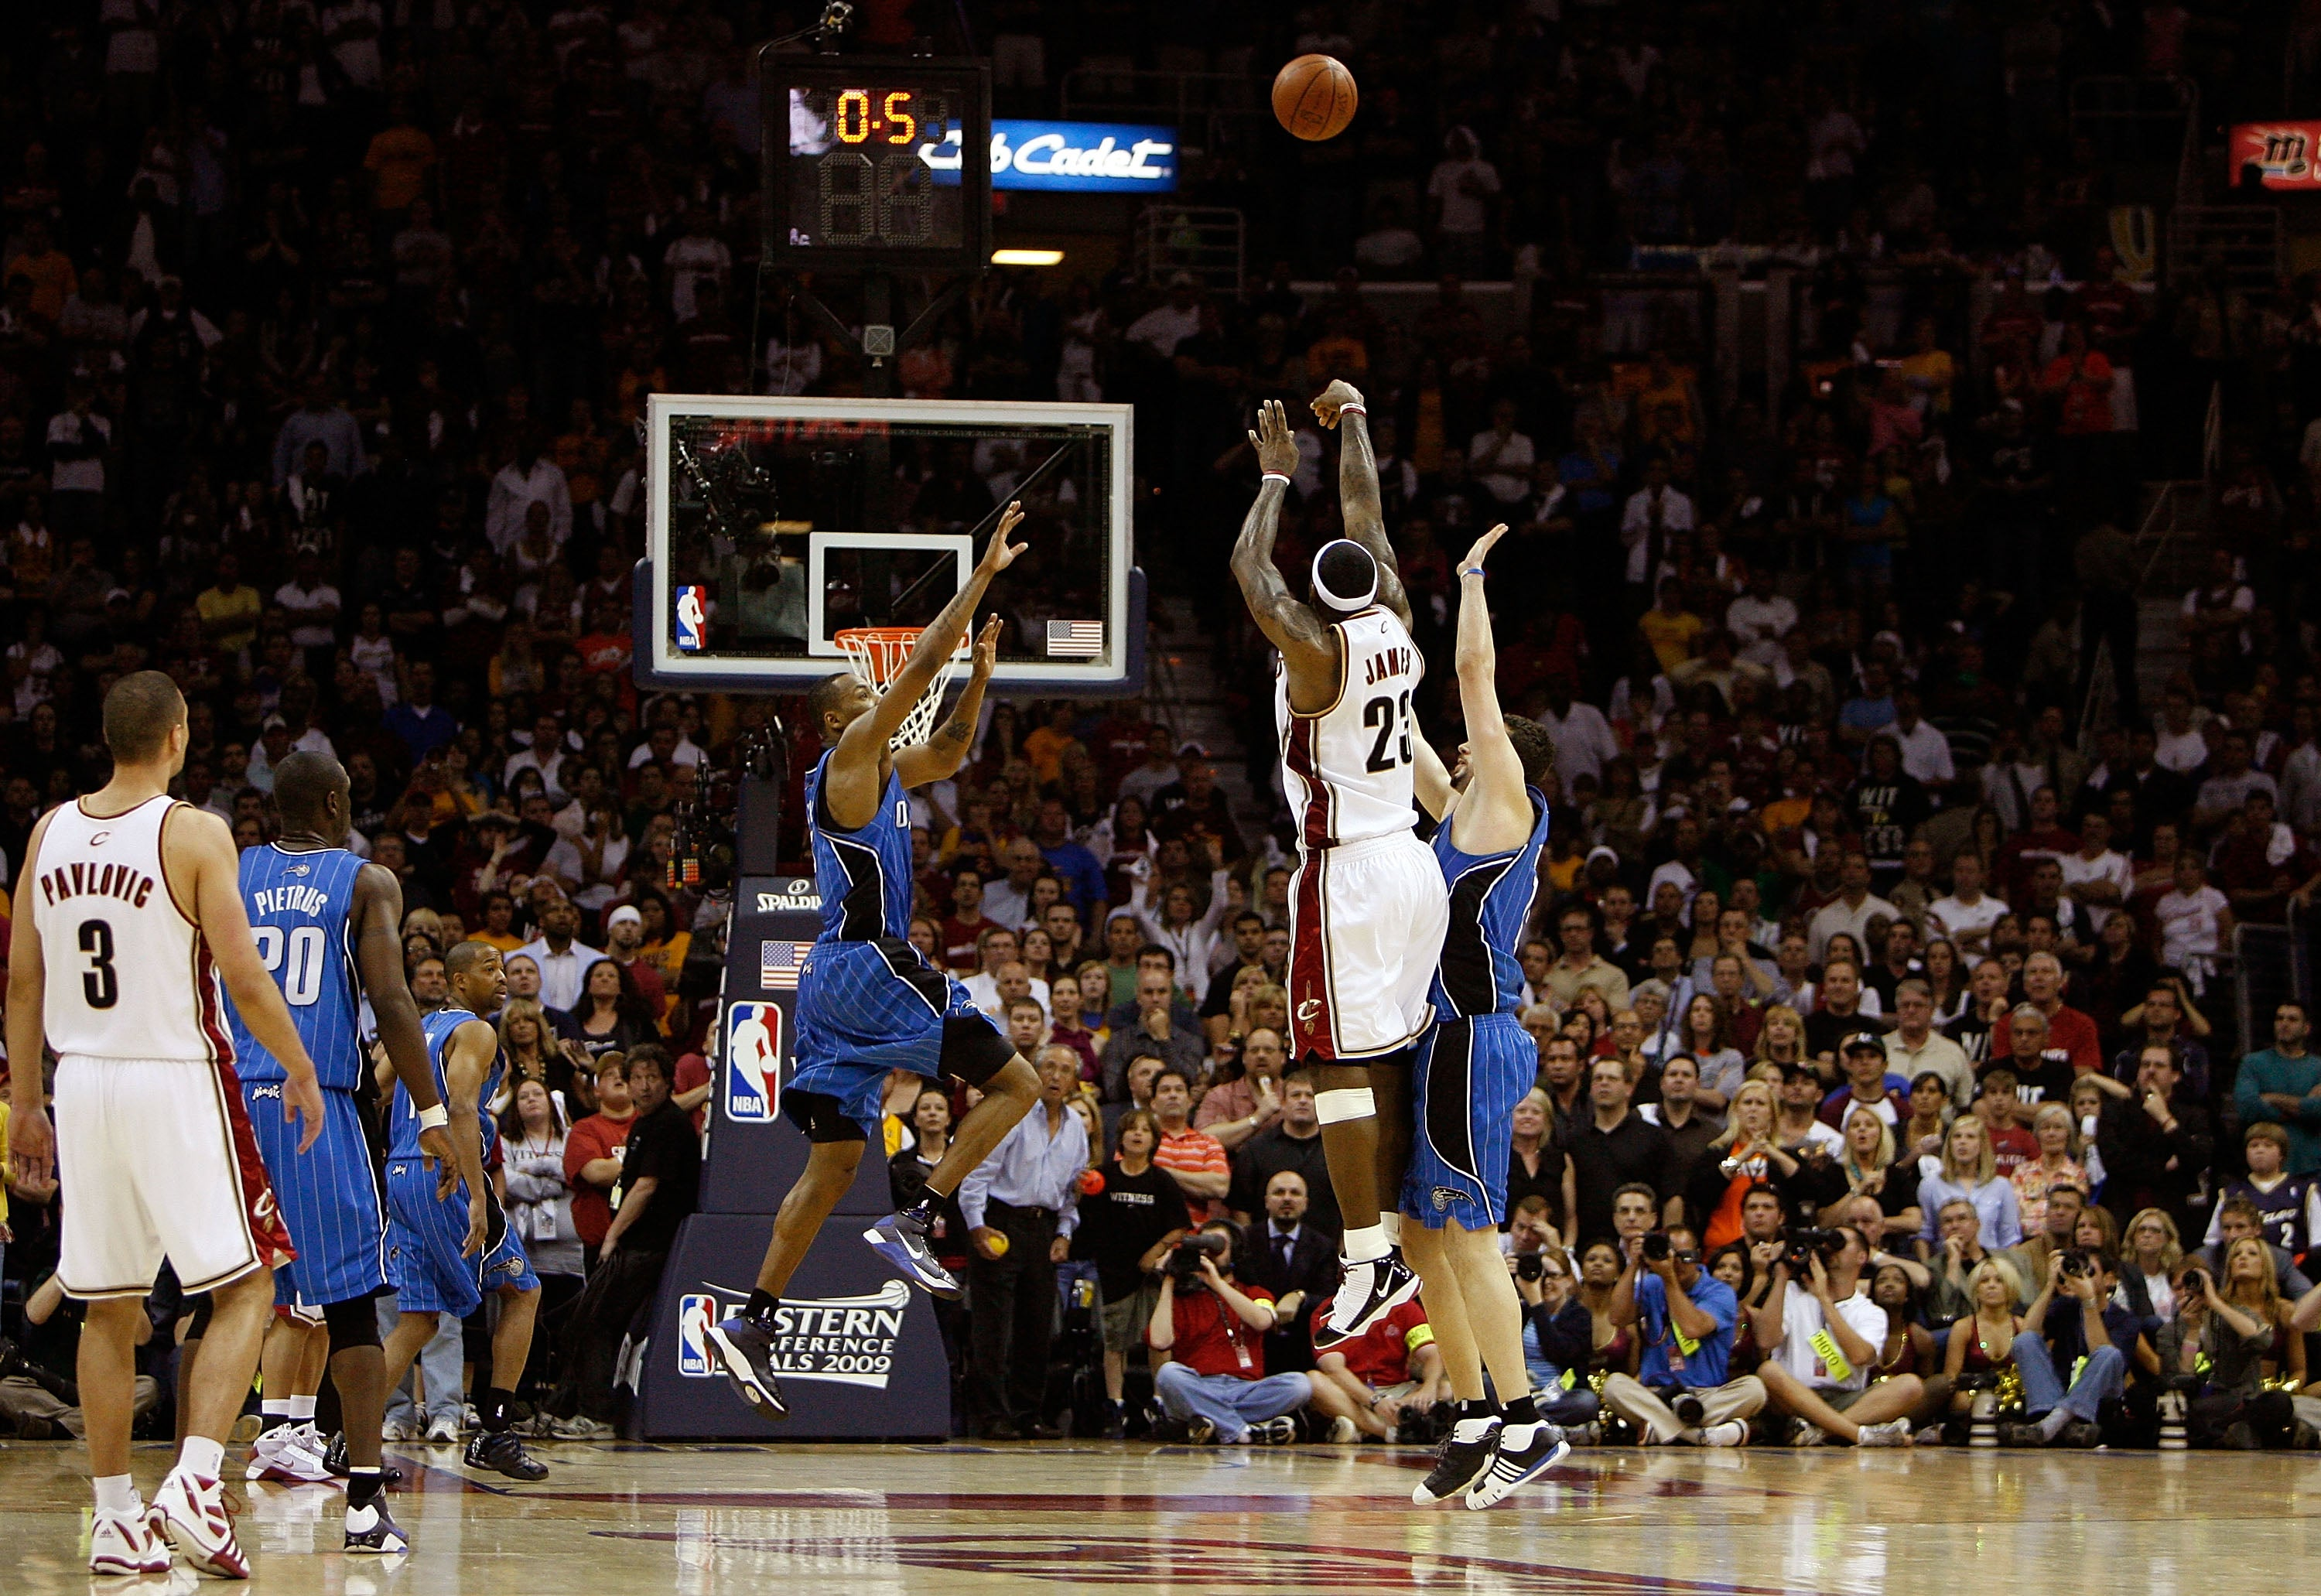 Lebron's Game 2 Buzzer Beater, 5 Years On